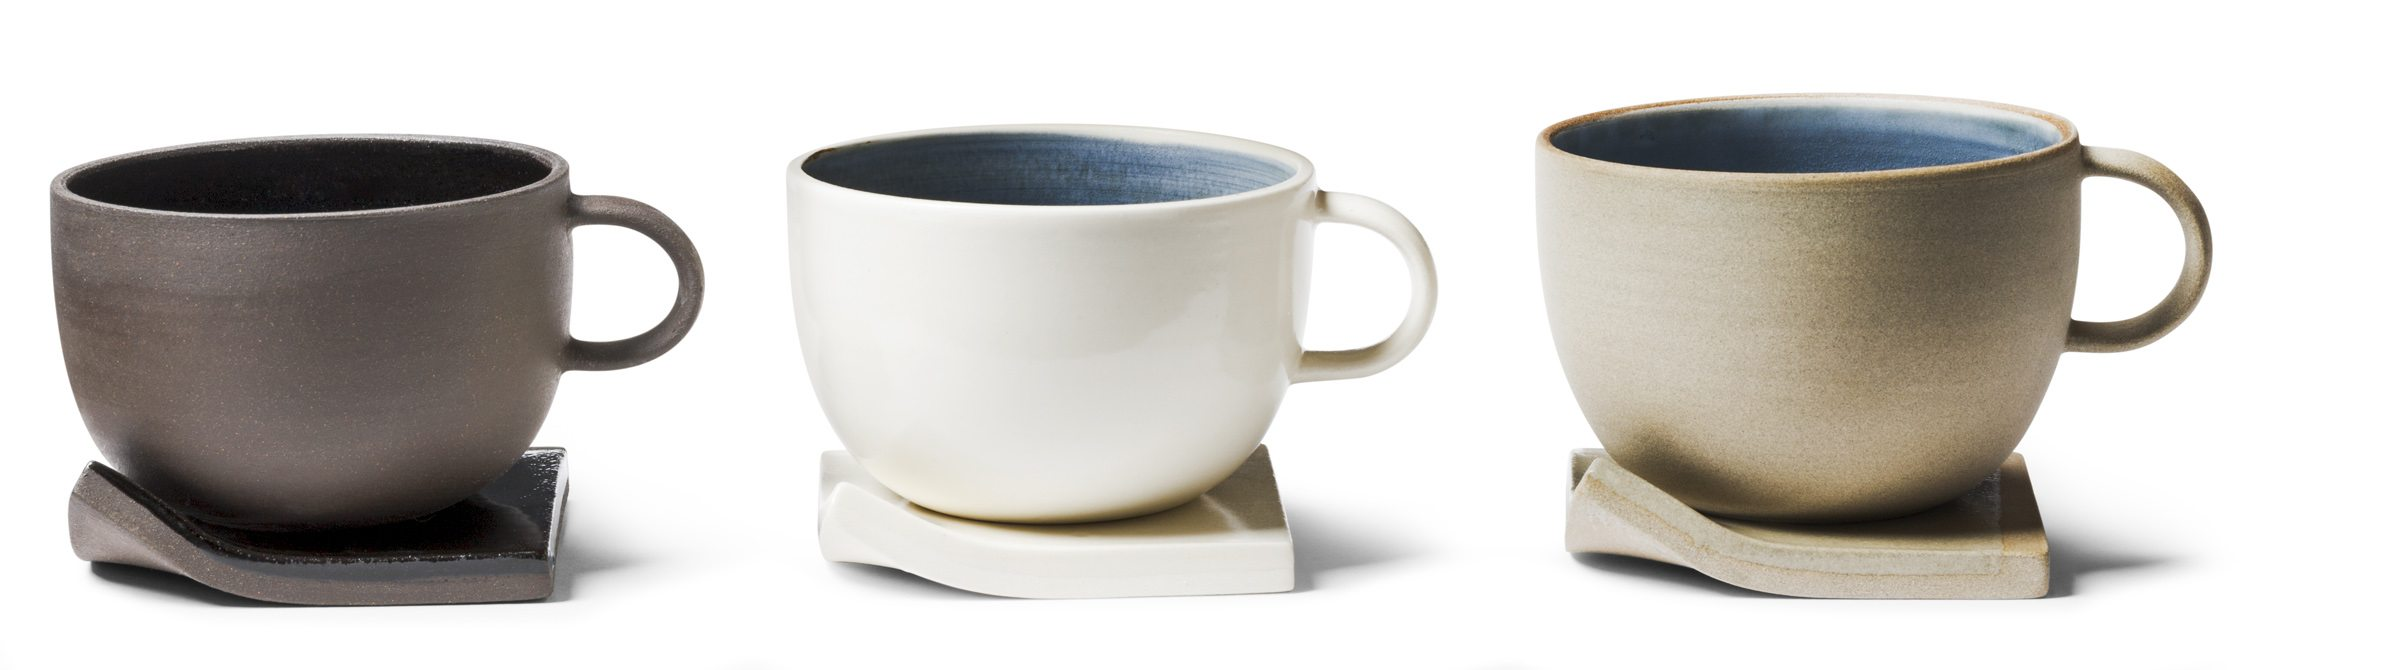 Cups and saucers $30 each by Marie-Claude Girard, Marie-Claude Girard